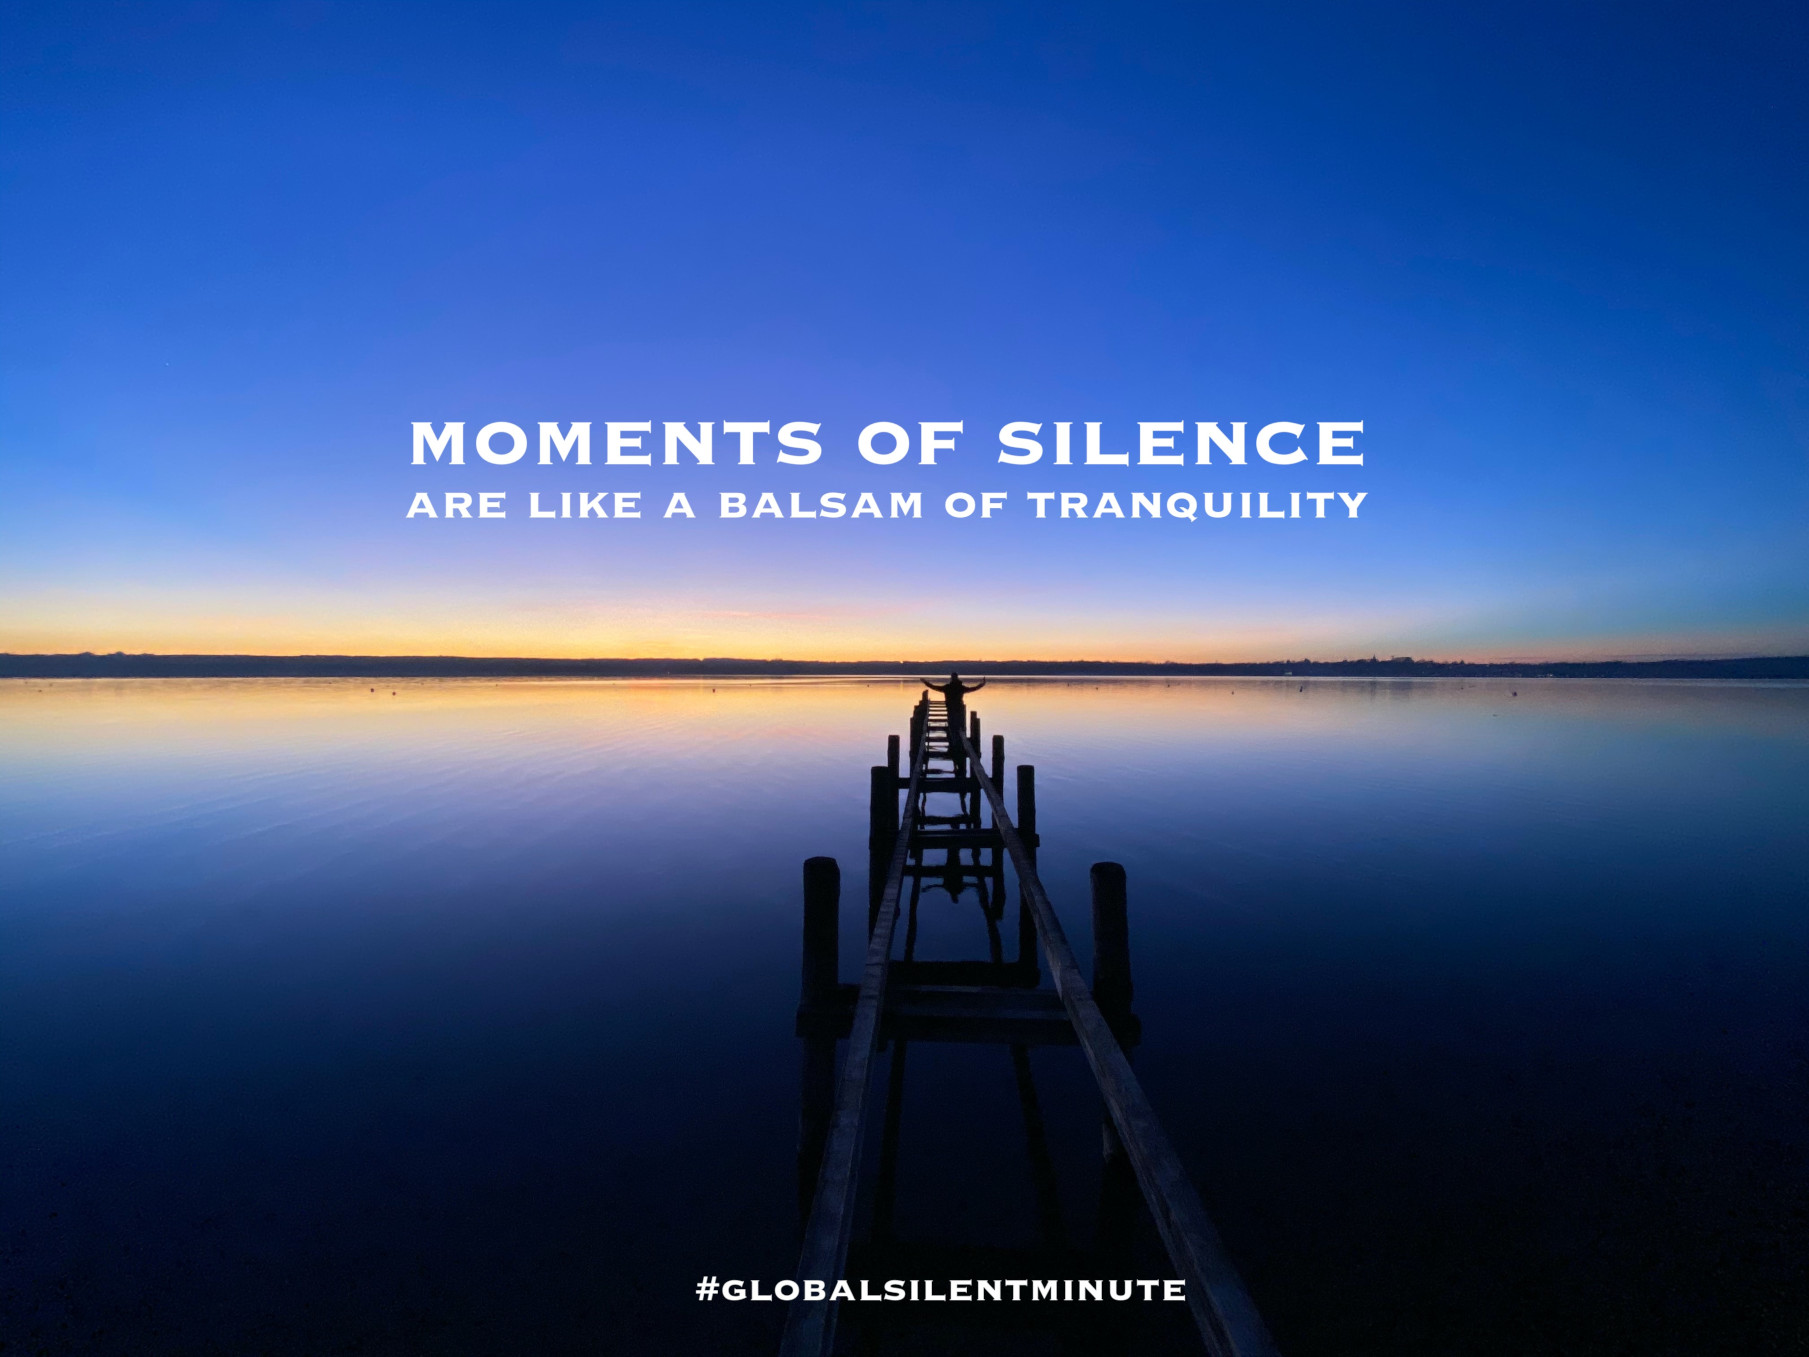 7.Moments of Silence are like the balsam of tranquility